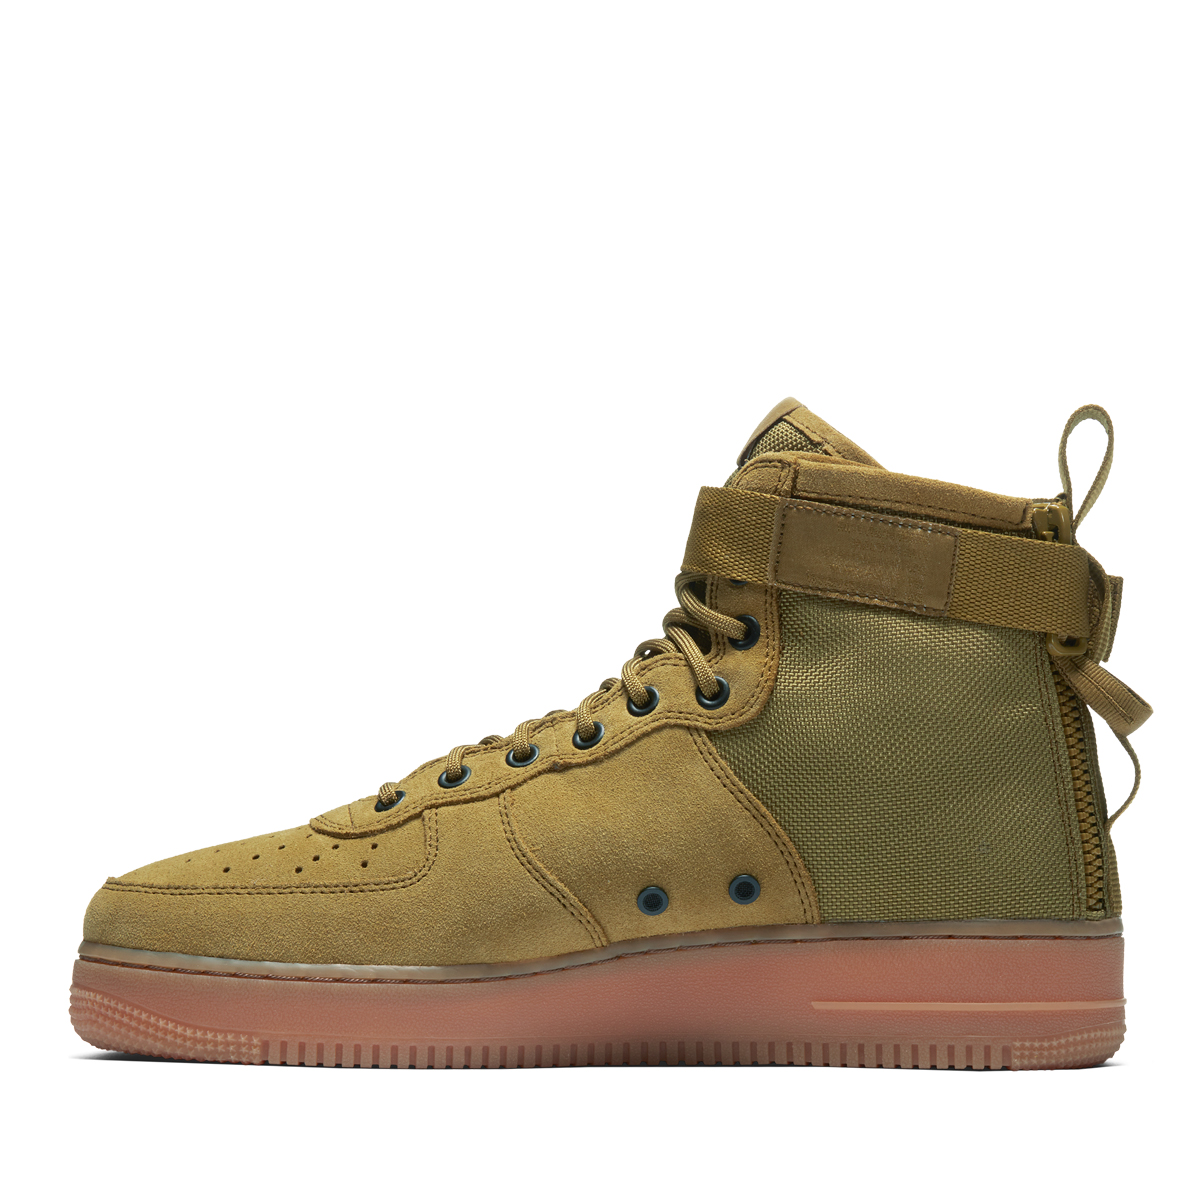 watch f9bc5 53c0e NIKE SF AF1 MID (Nike special field air force 1 mid) DESERT MOSS DESERT MOSS-GUM  MED BROWN 18SP-I